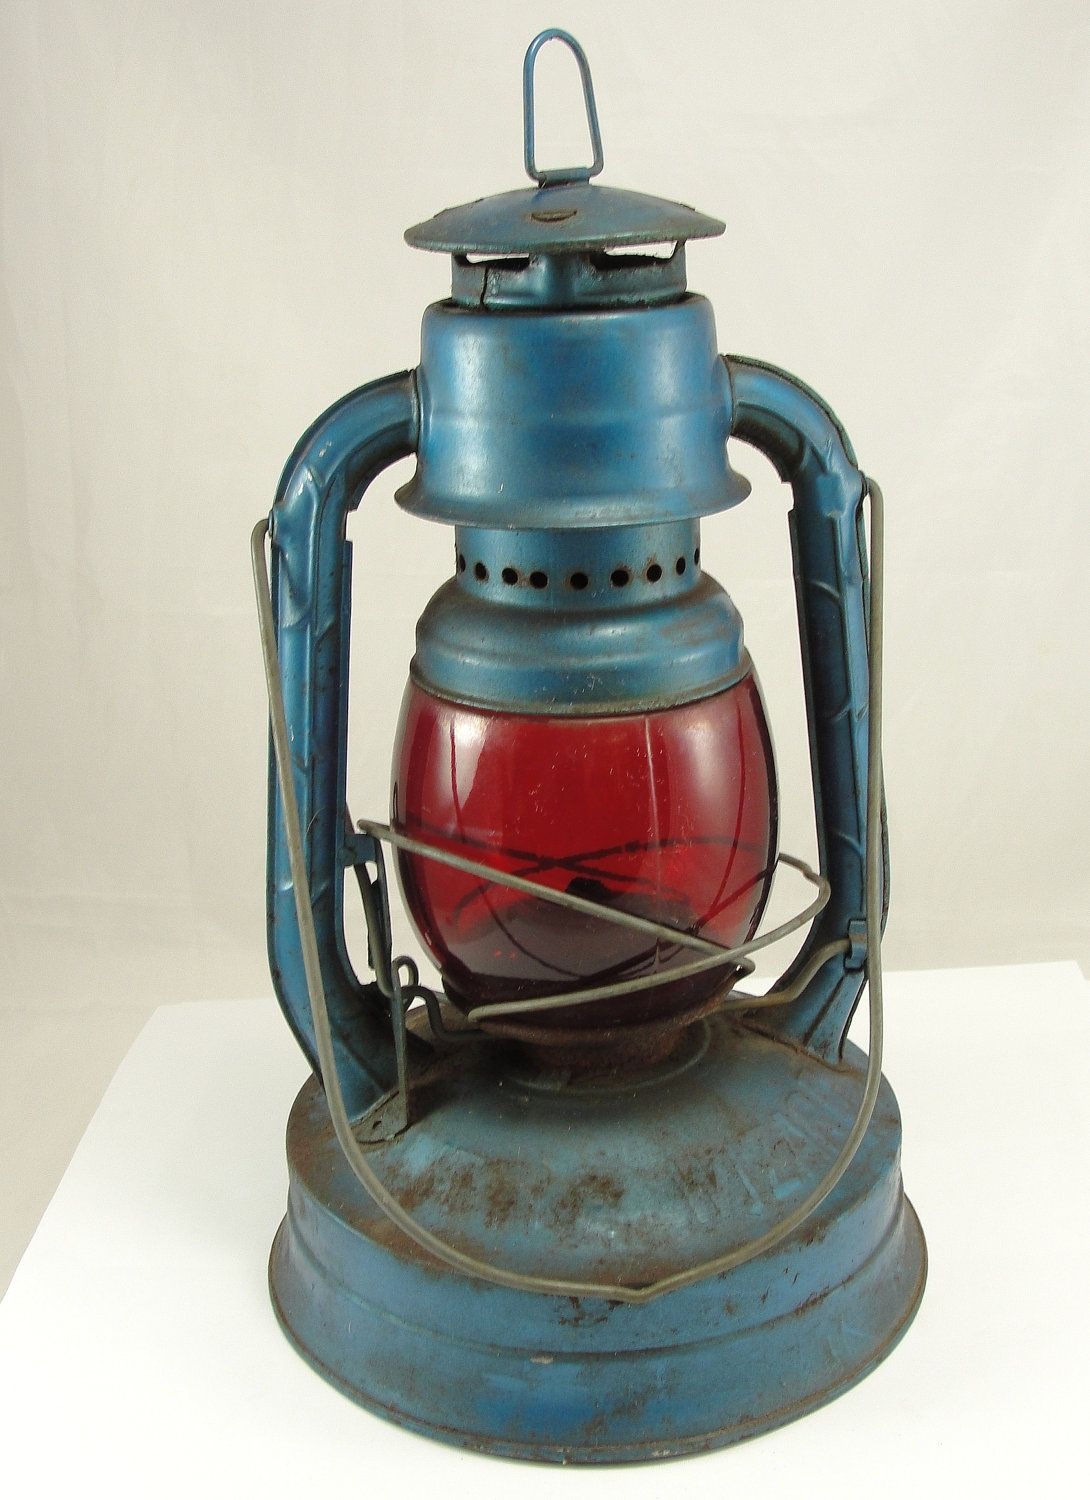 old kerosene lanterns for sale vintage dietz lantern railroad lantern kerosene blue red lens. Black Bedroom Furniture Sets. Home Design Ideas